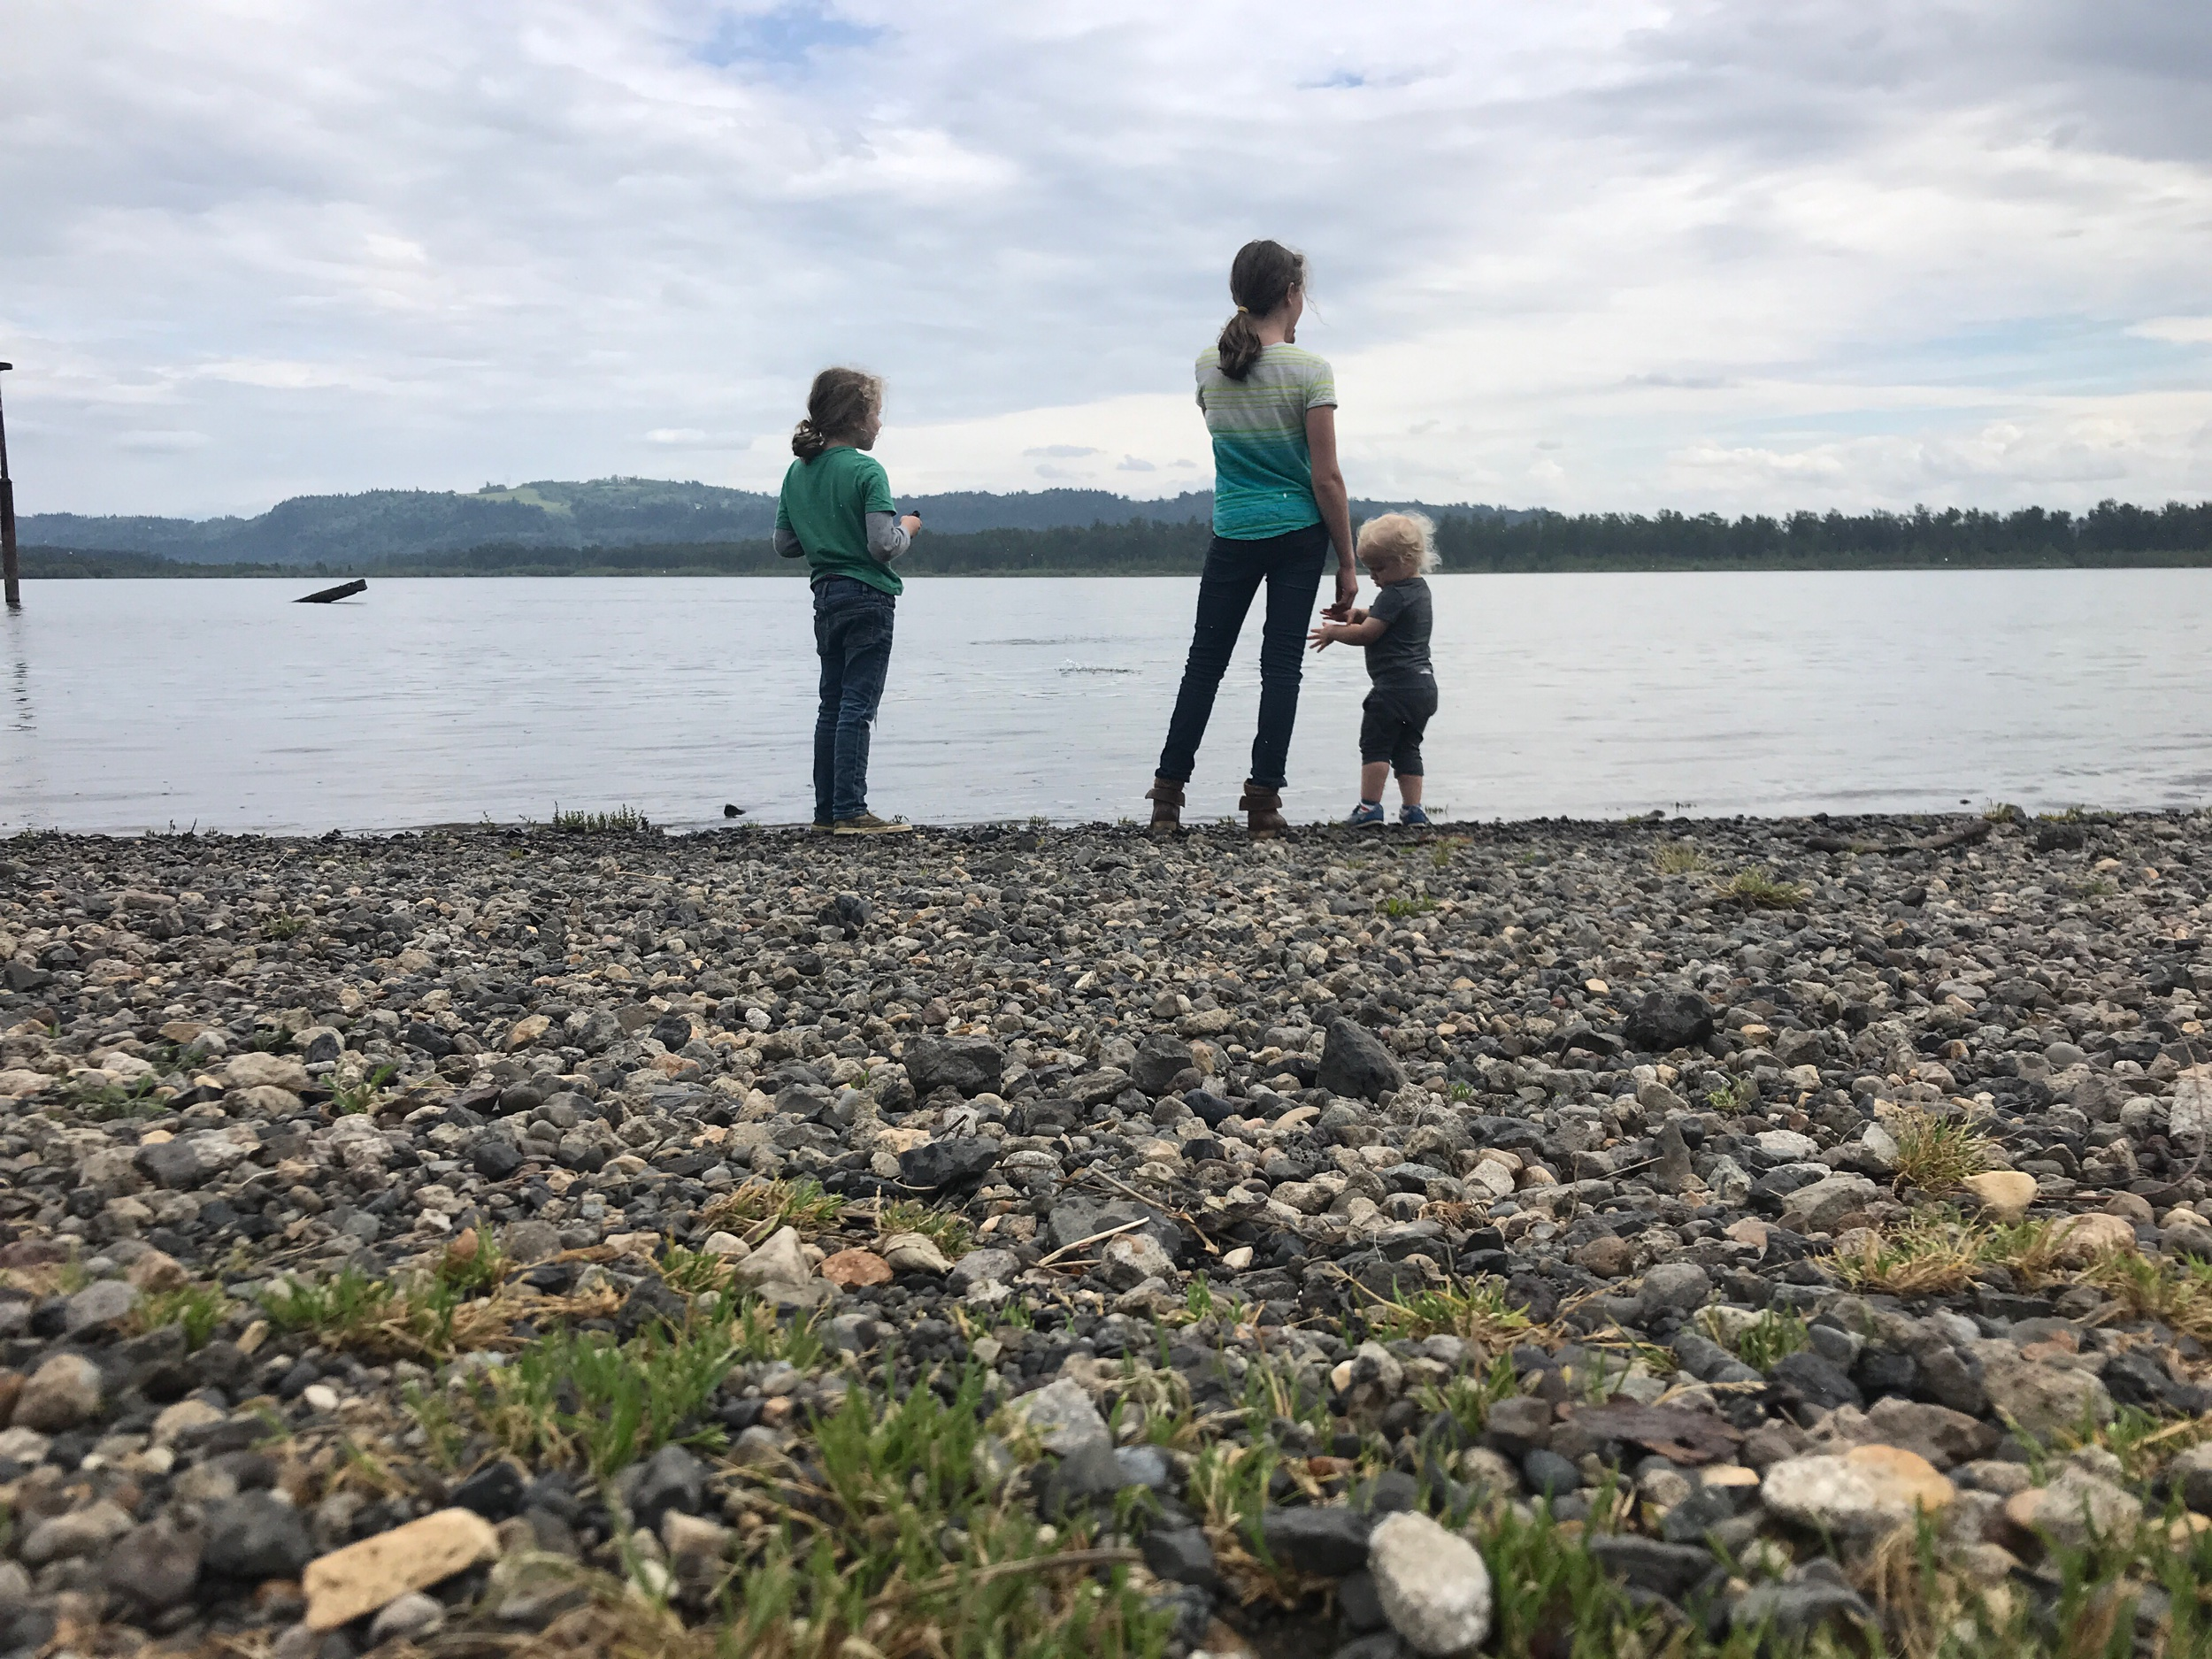 Children standing the edge of the Columbia River throwing rocks